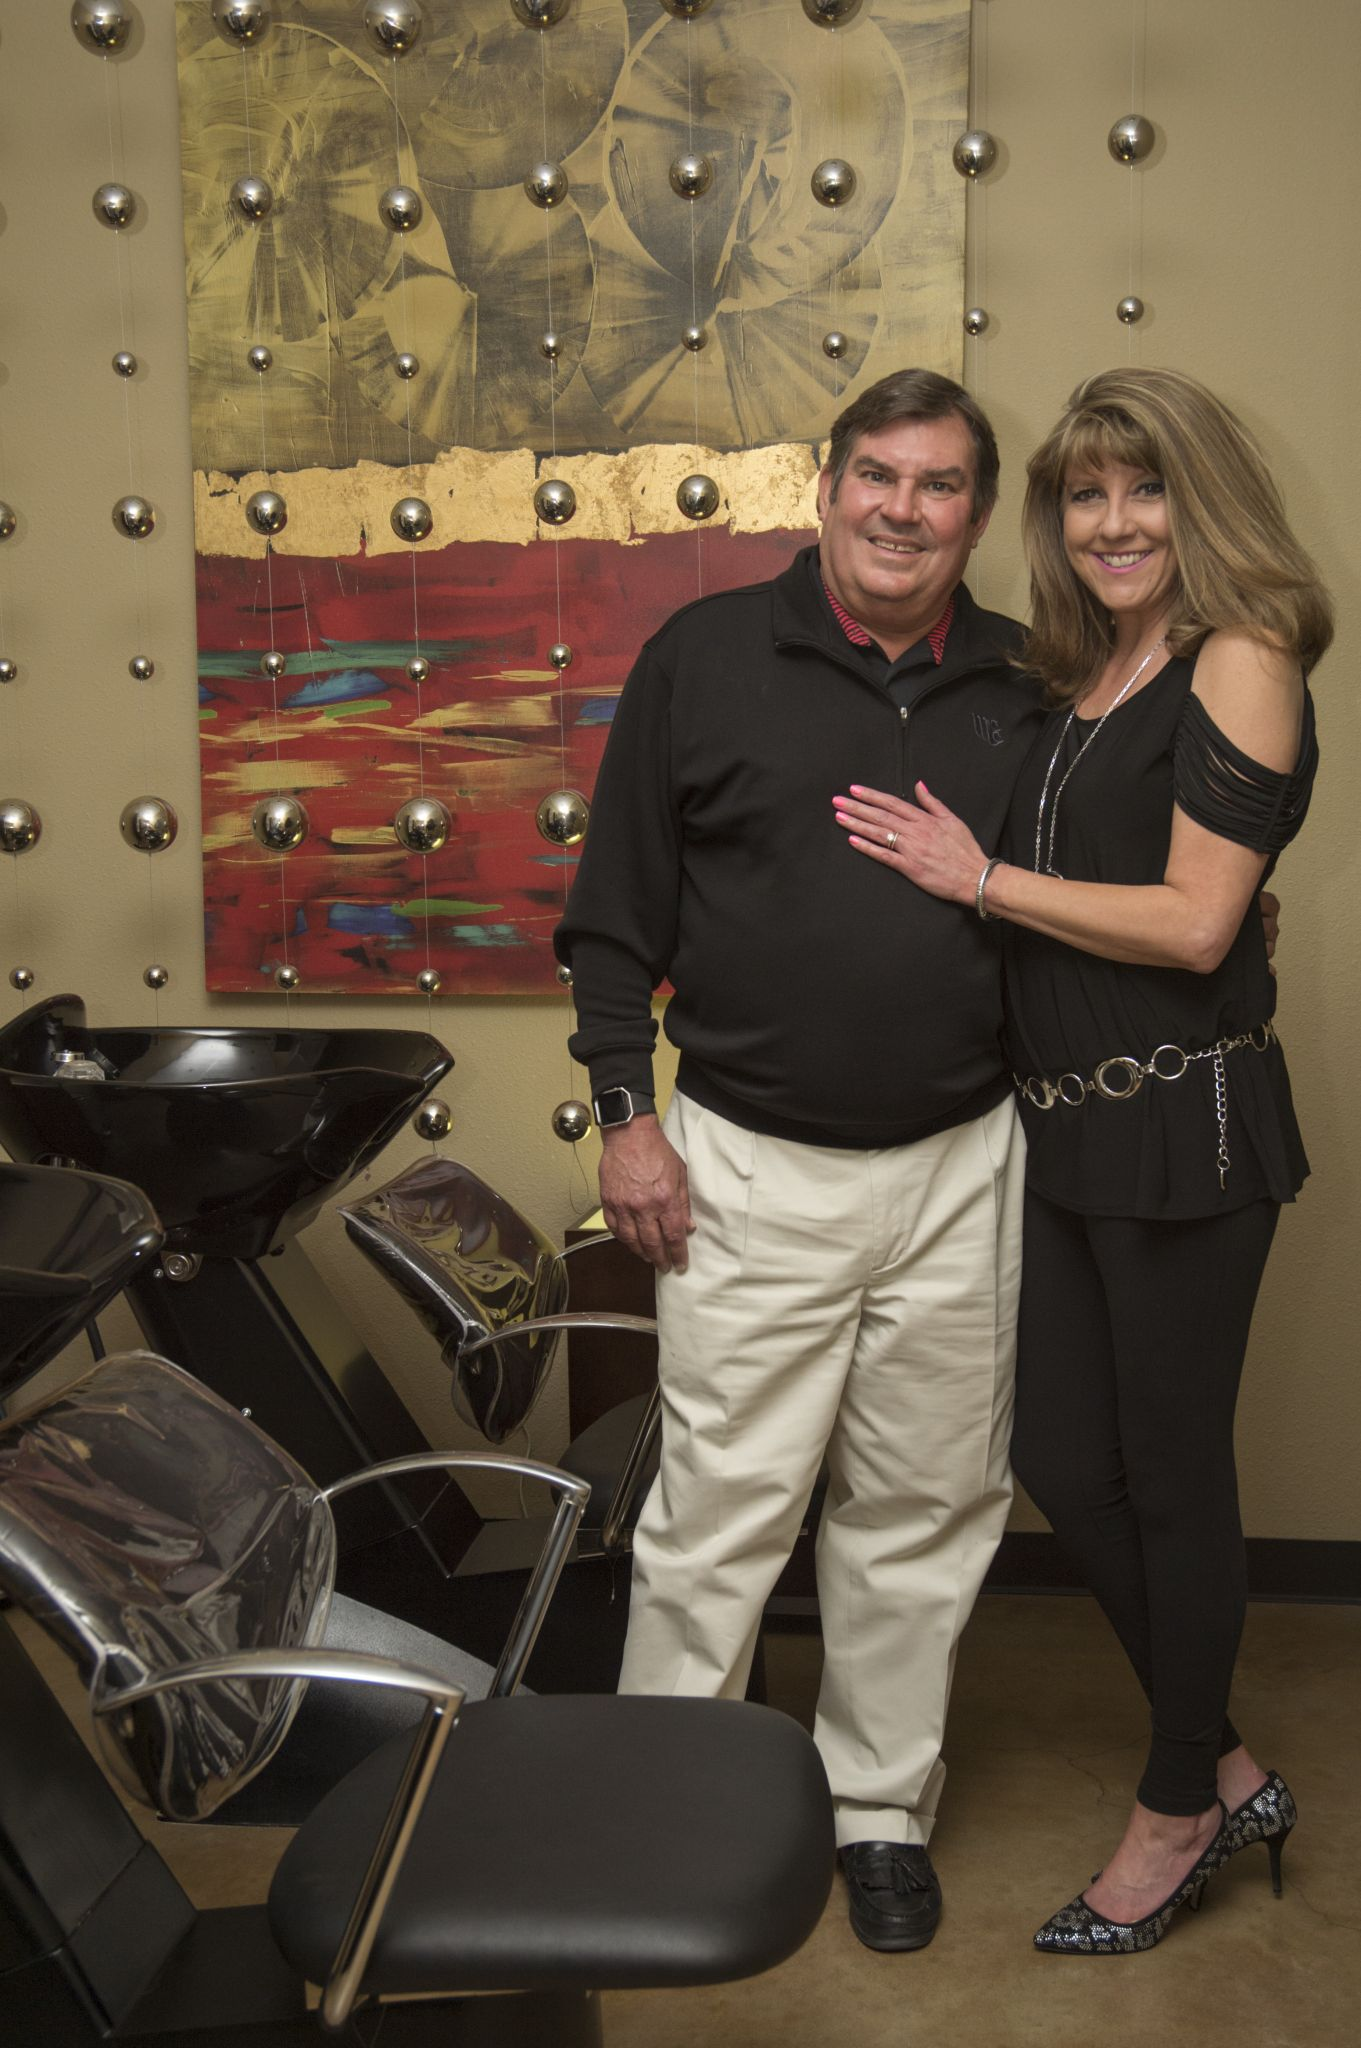 Joe James Salon To Remain Family Business With Oil Industry Veterans